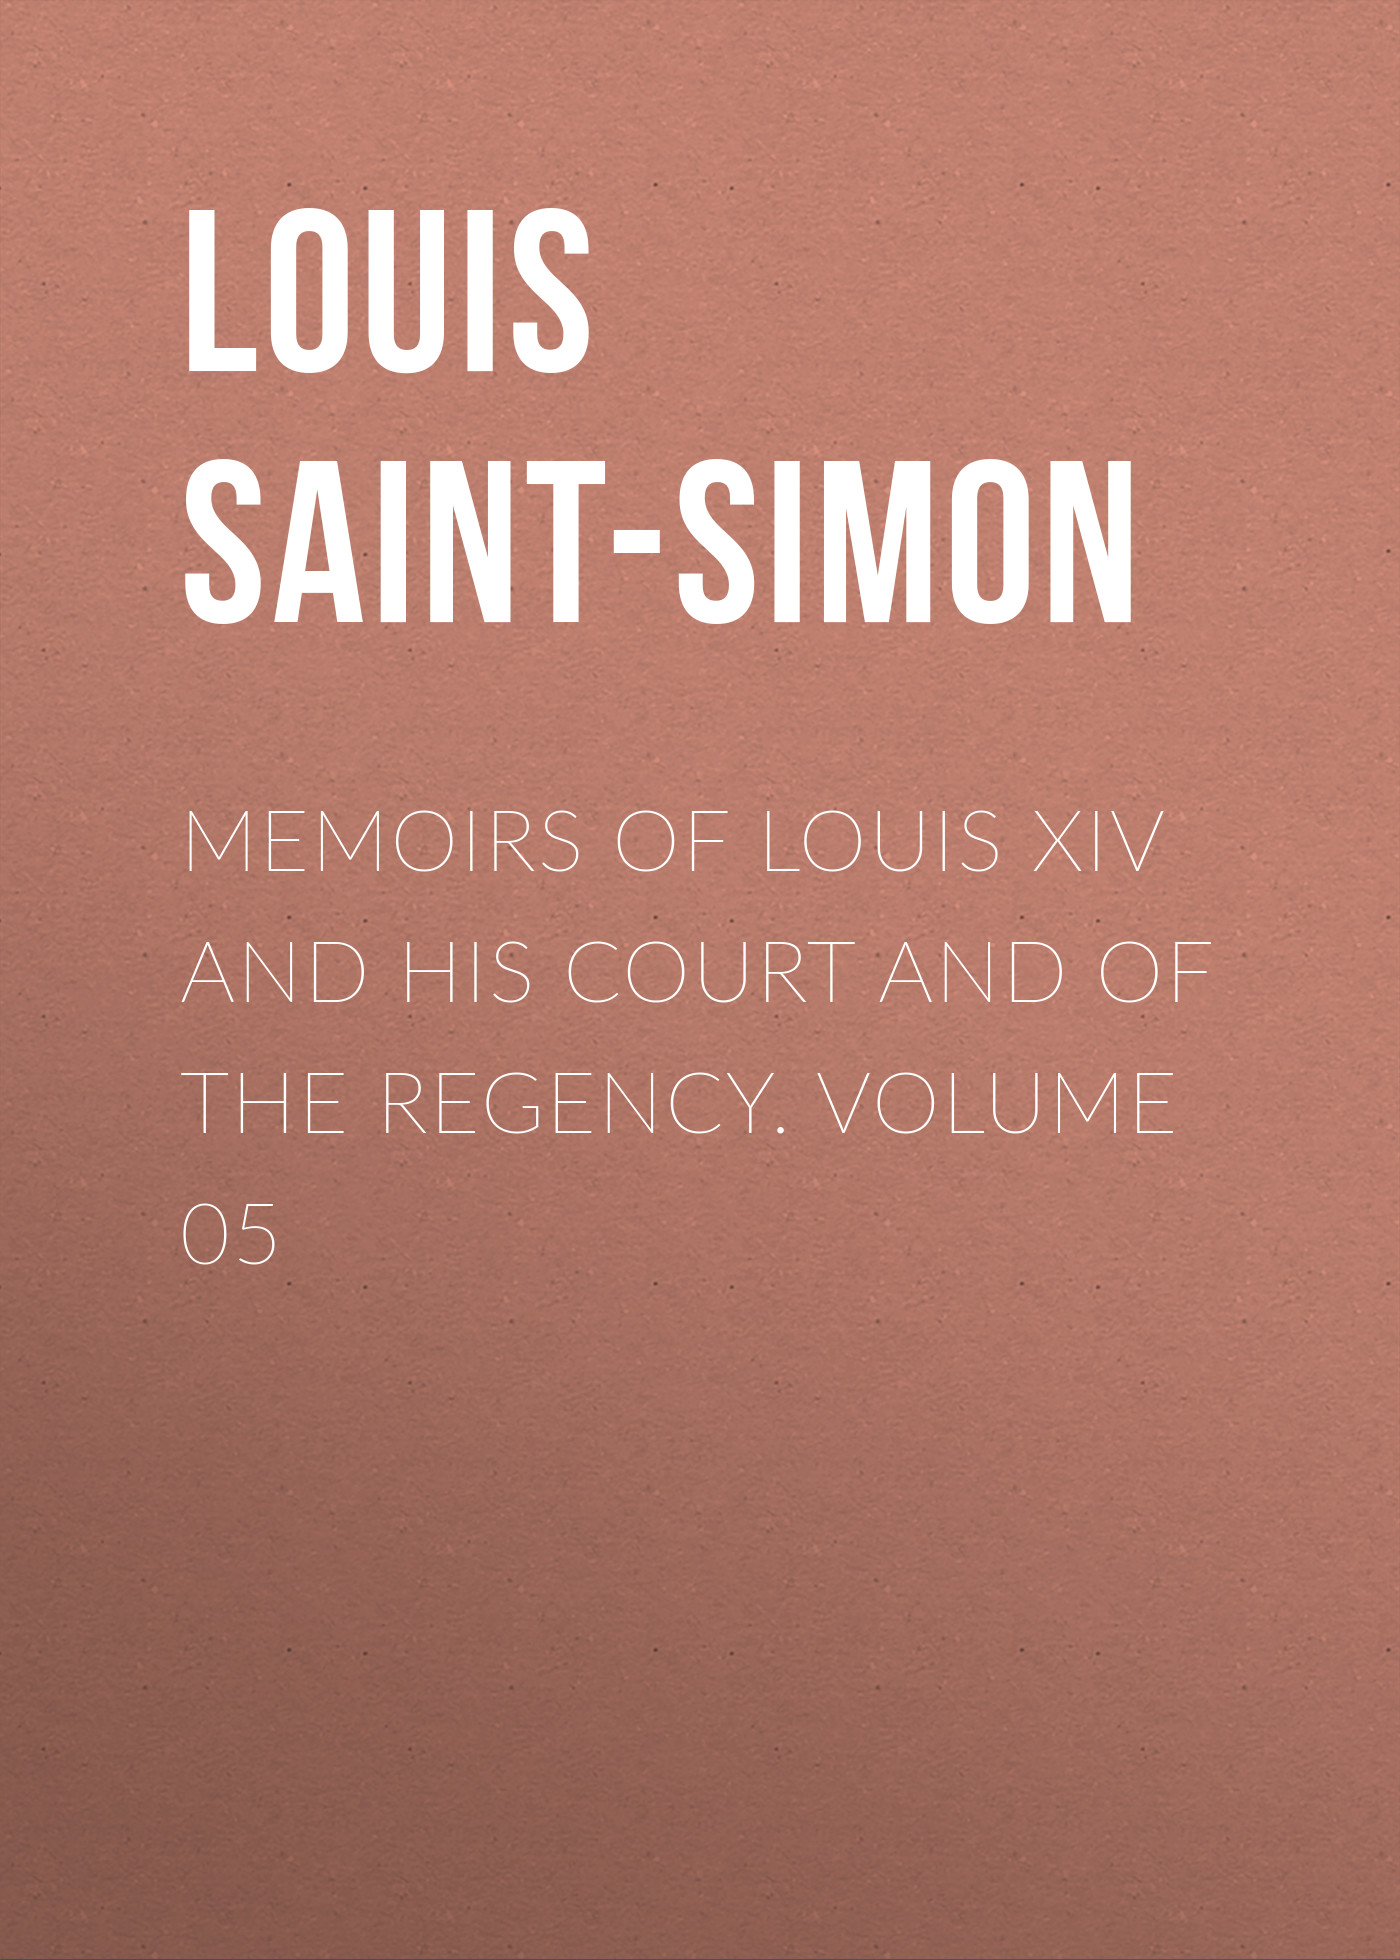 Фото - Louis Saint-Simon Memoirs of Louis XIV and His Court and of the Regency. Volume 05 jules marcou life letters and works of louis agassiz volume i